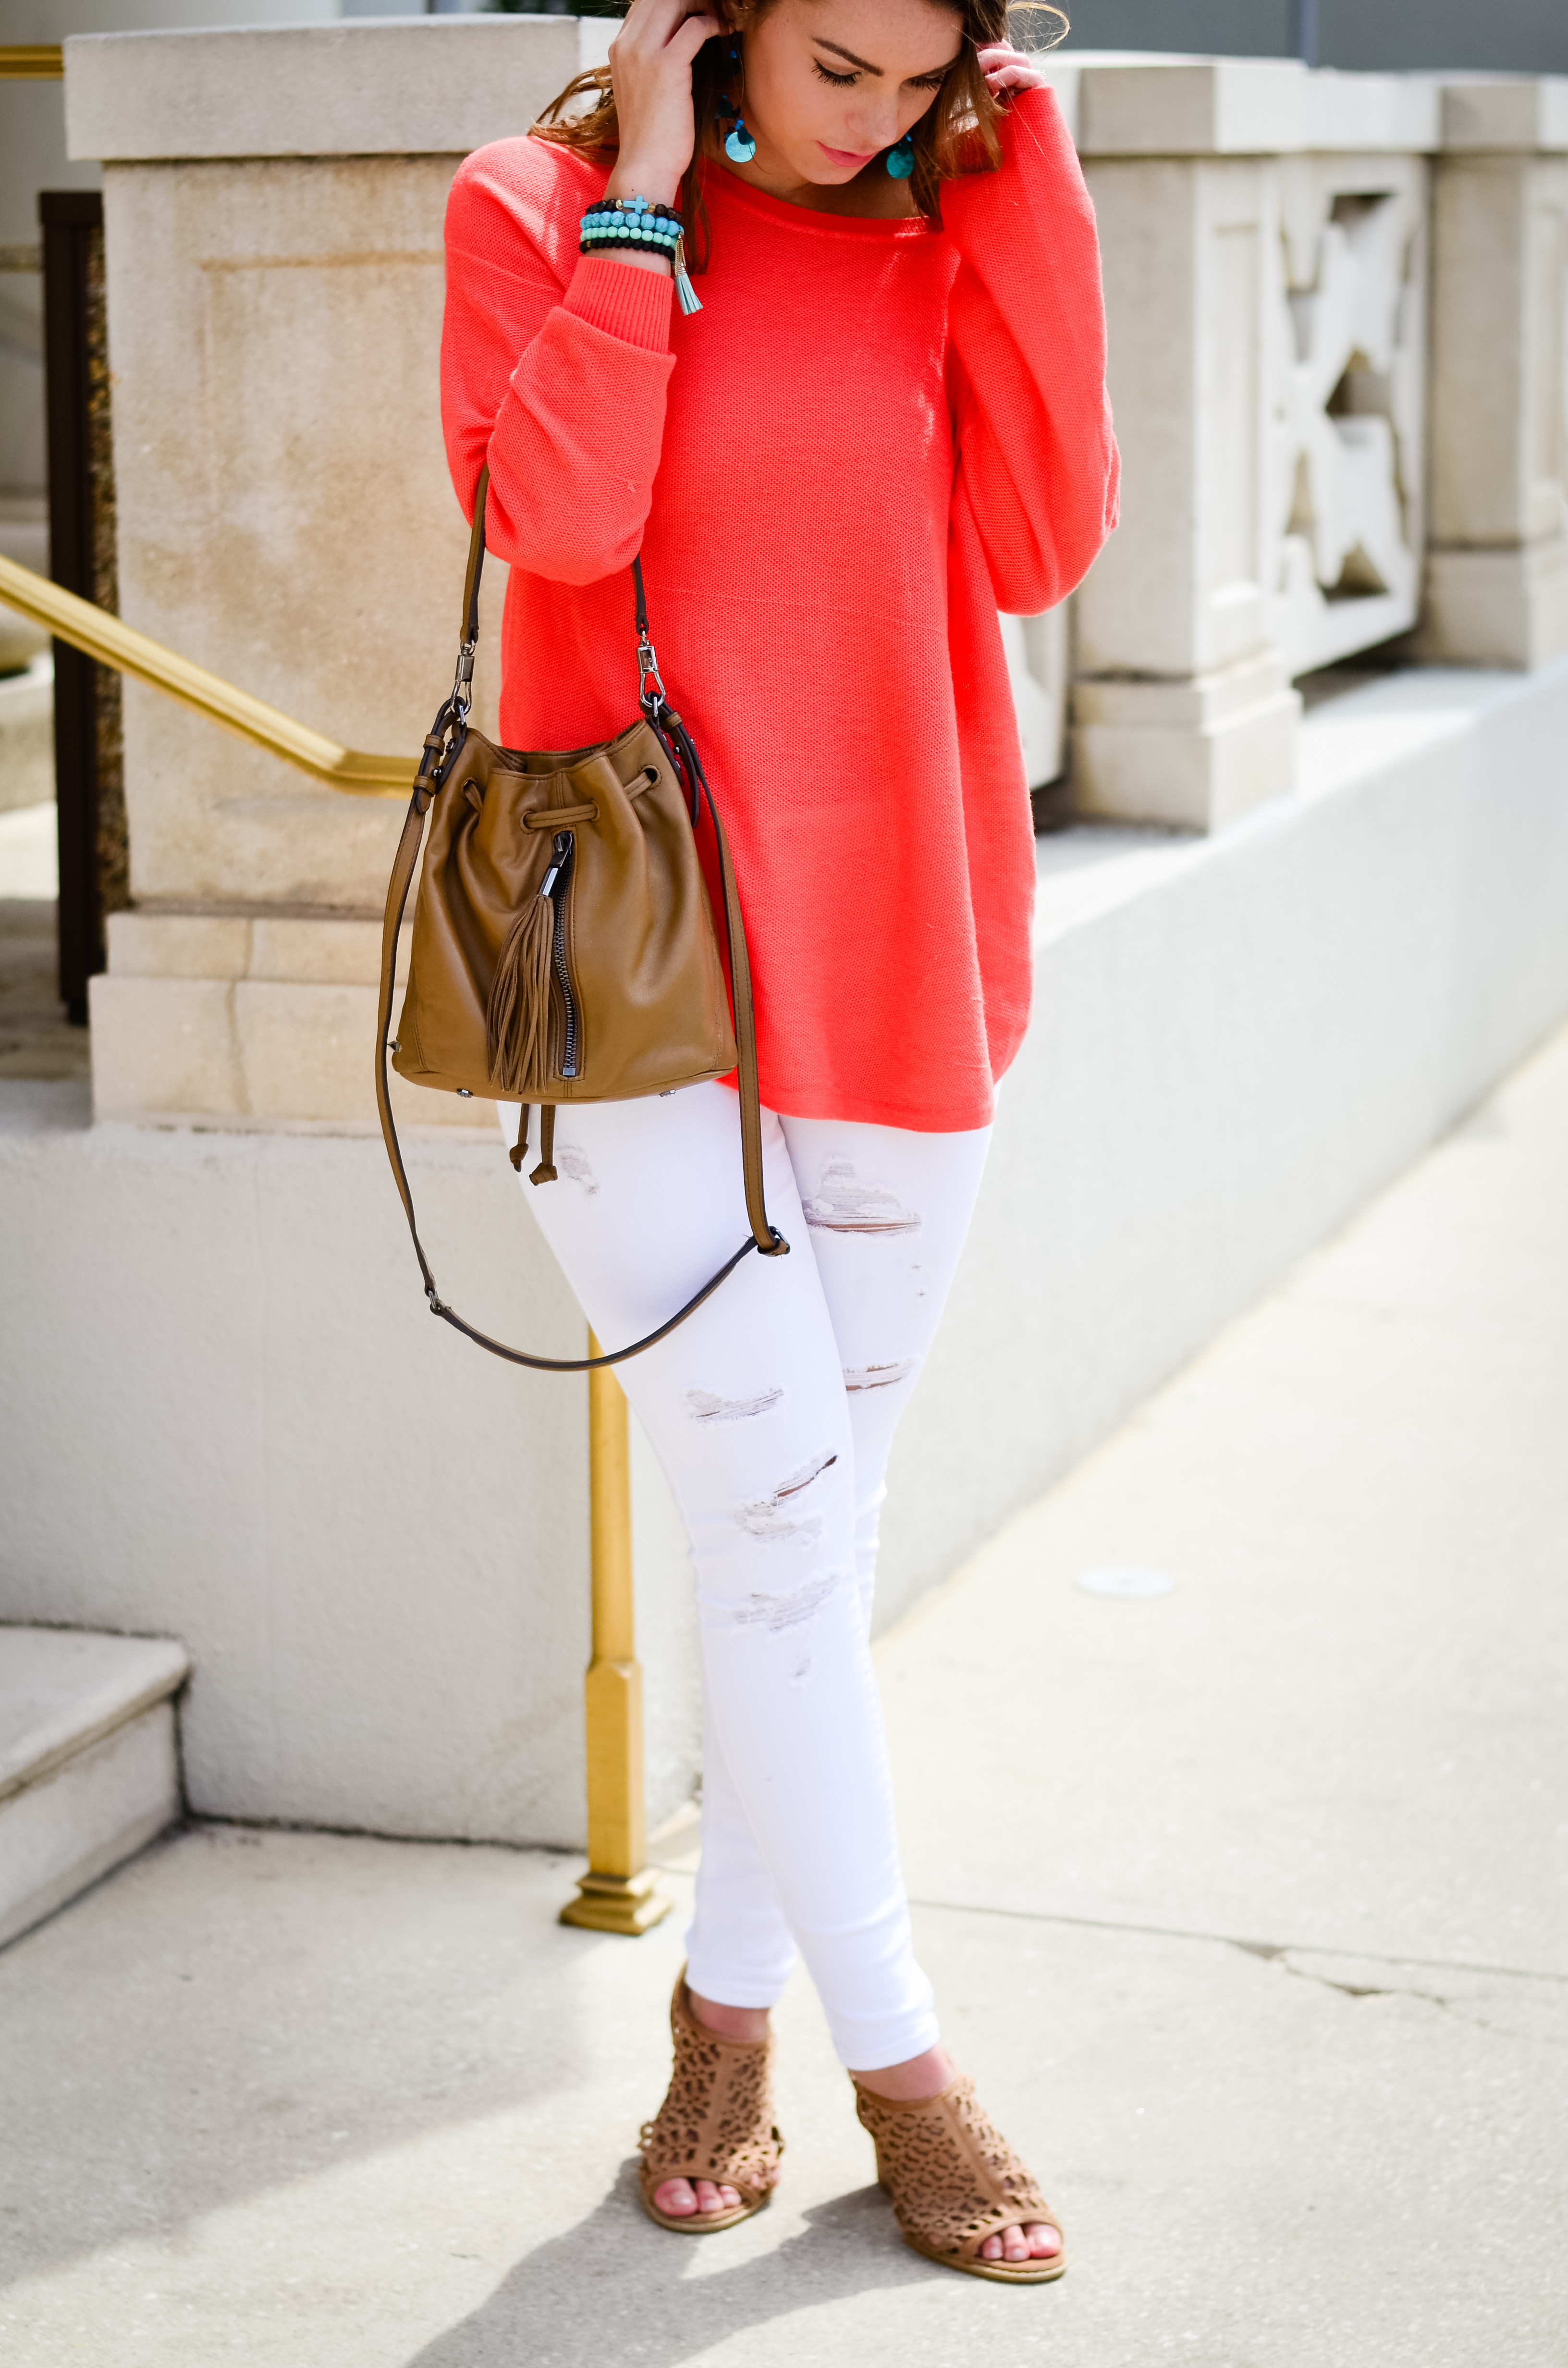 Coral Sweater in St. Aug-16